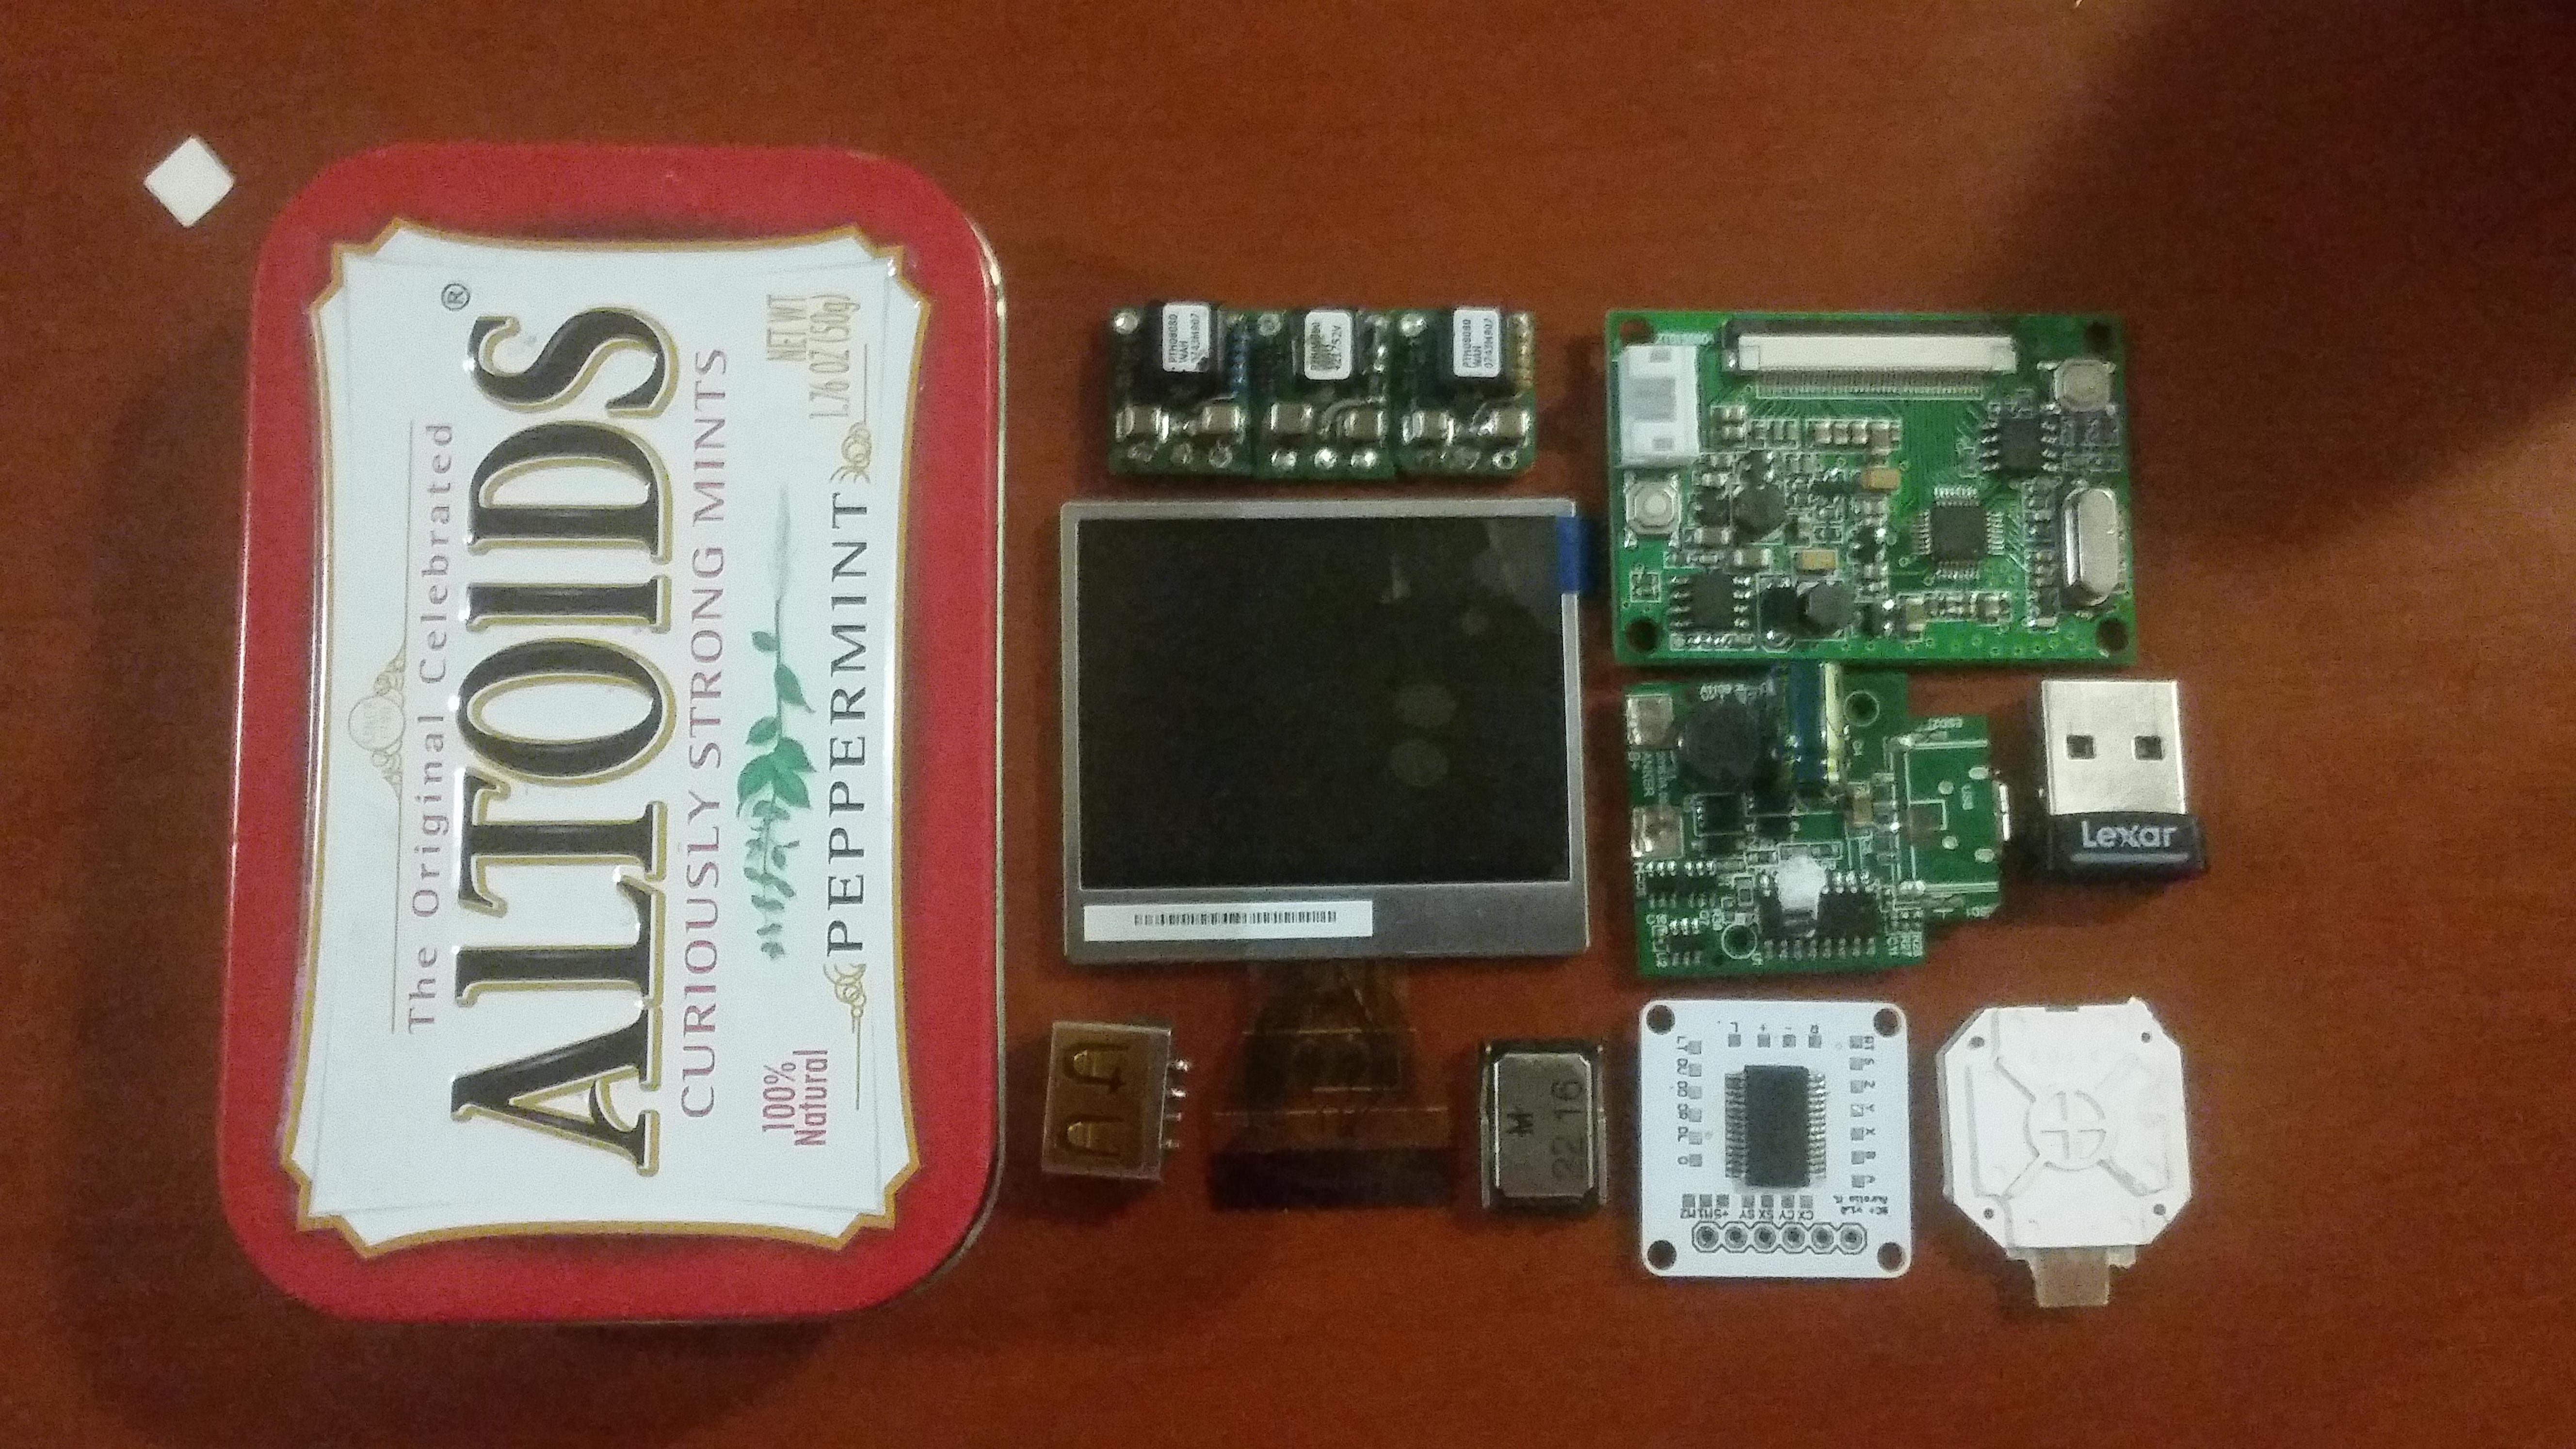 Stuff a Fully-Functional Nintendo Wii Into an Altoids Tin